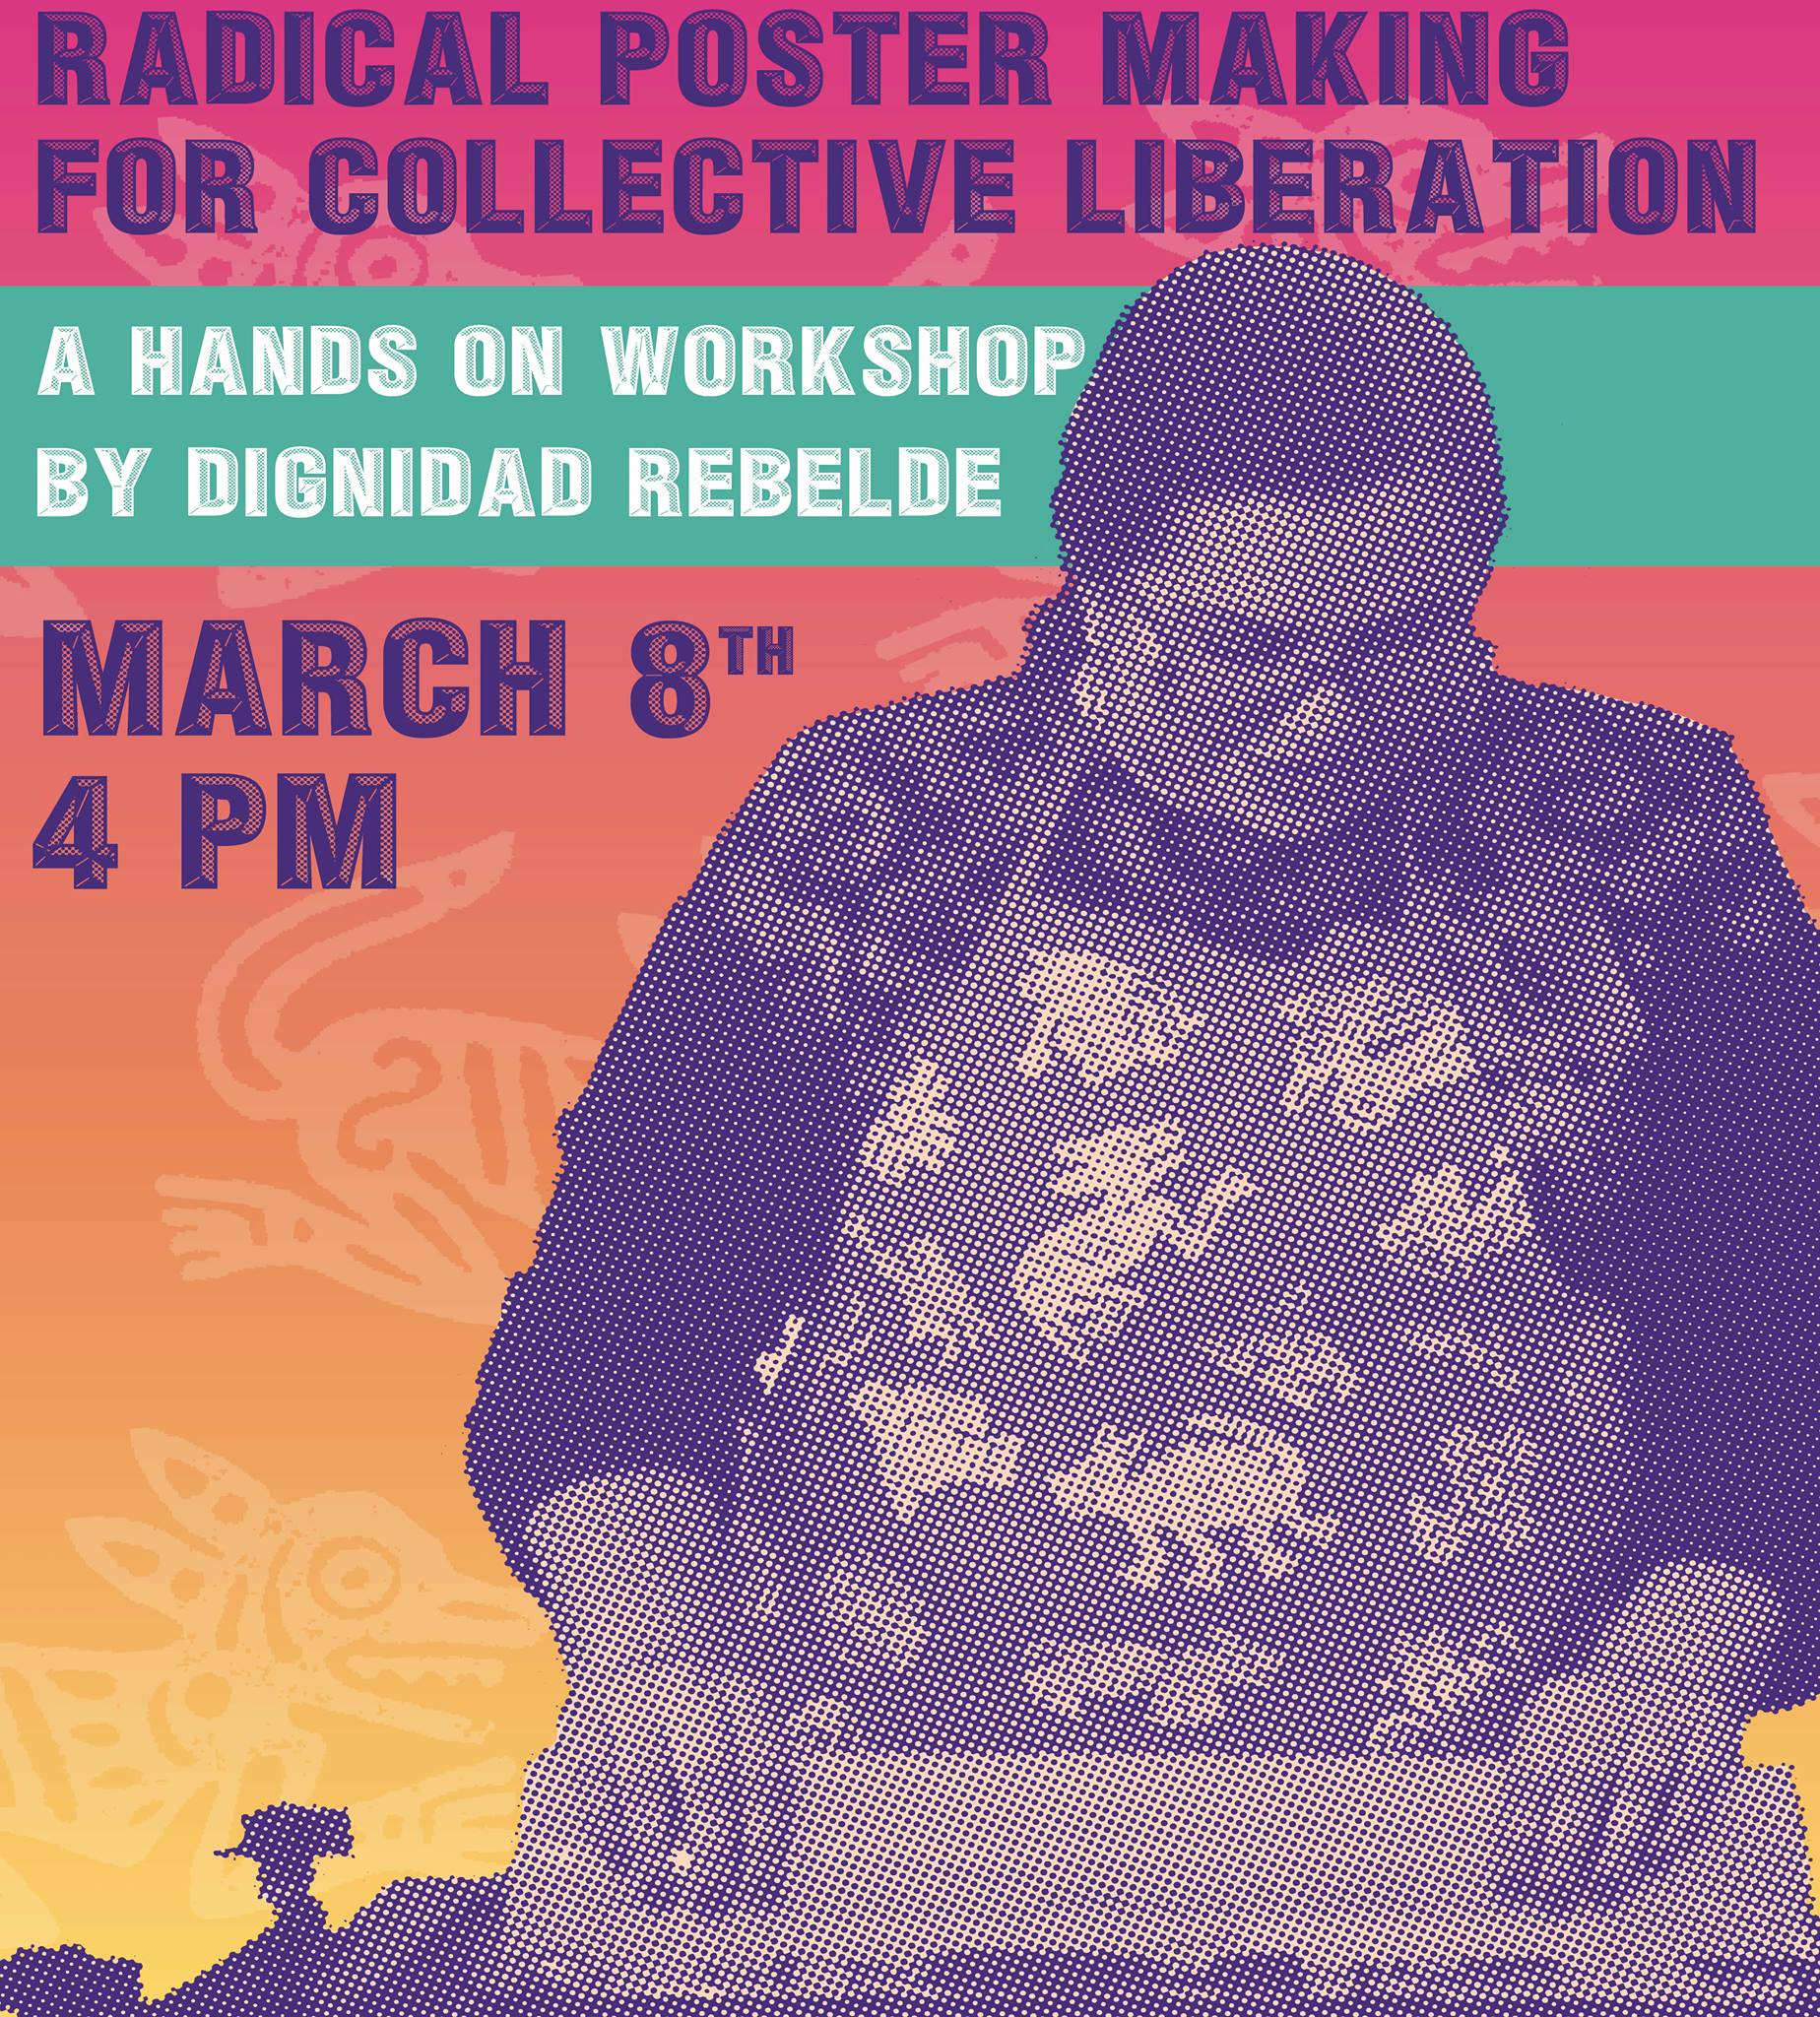 Radical Poster Making for Collective Liberation Workshop